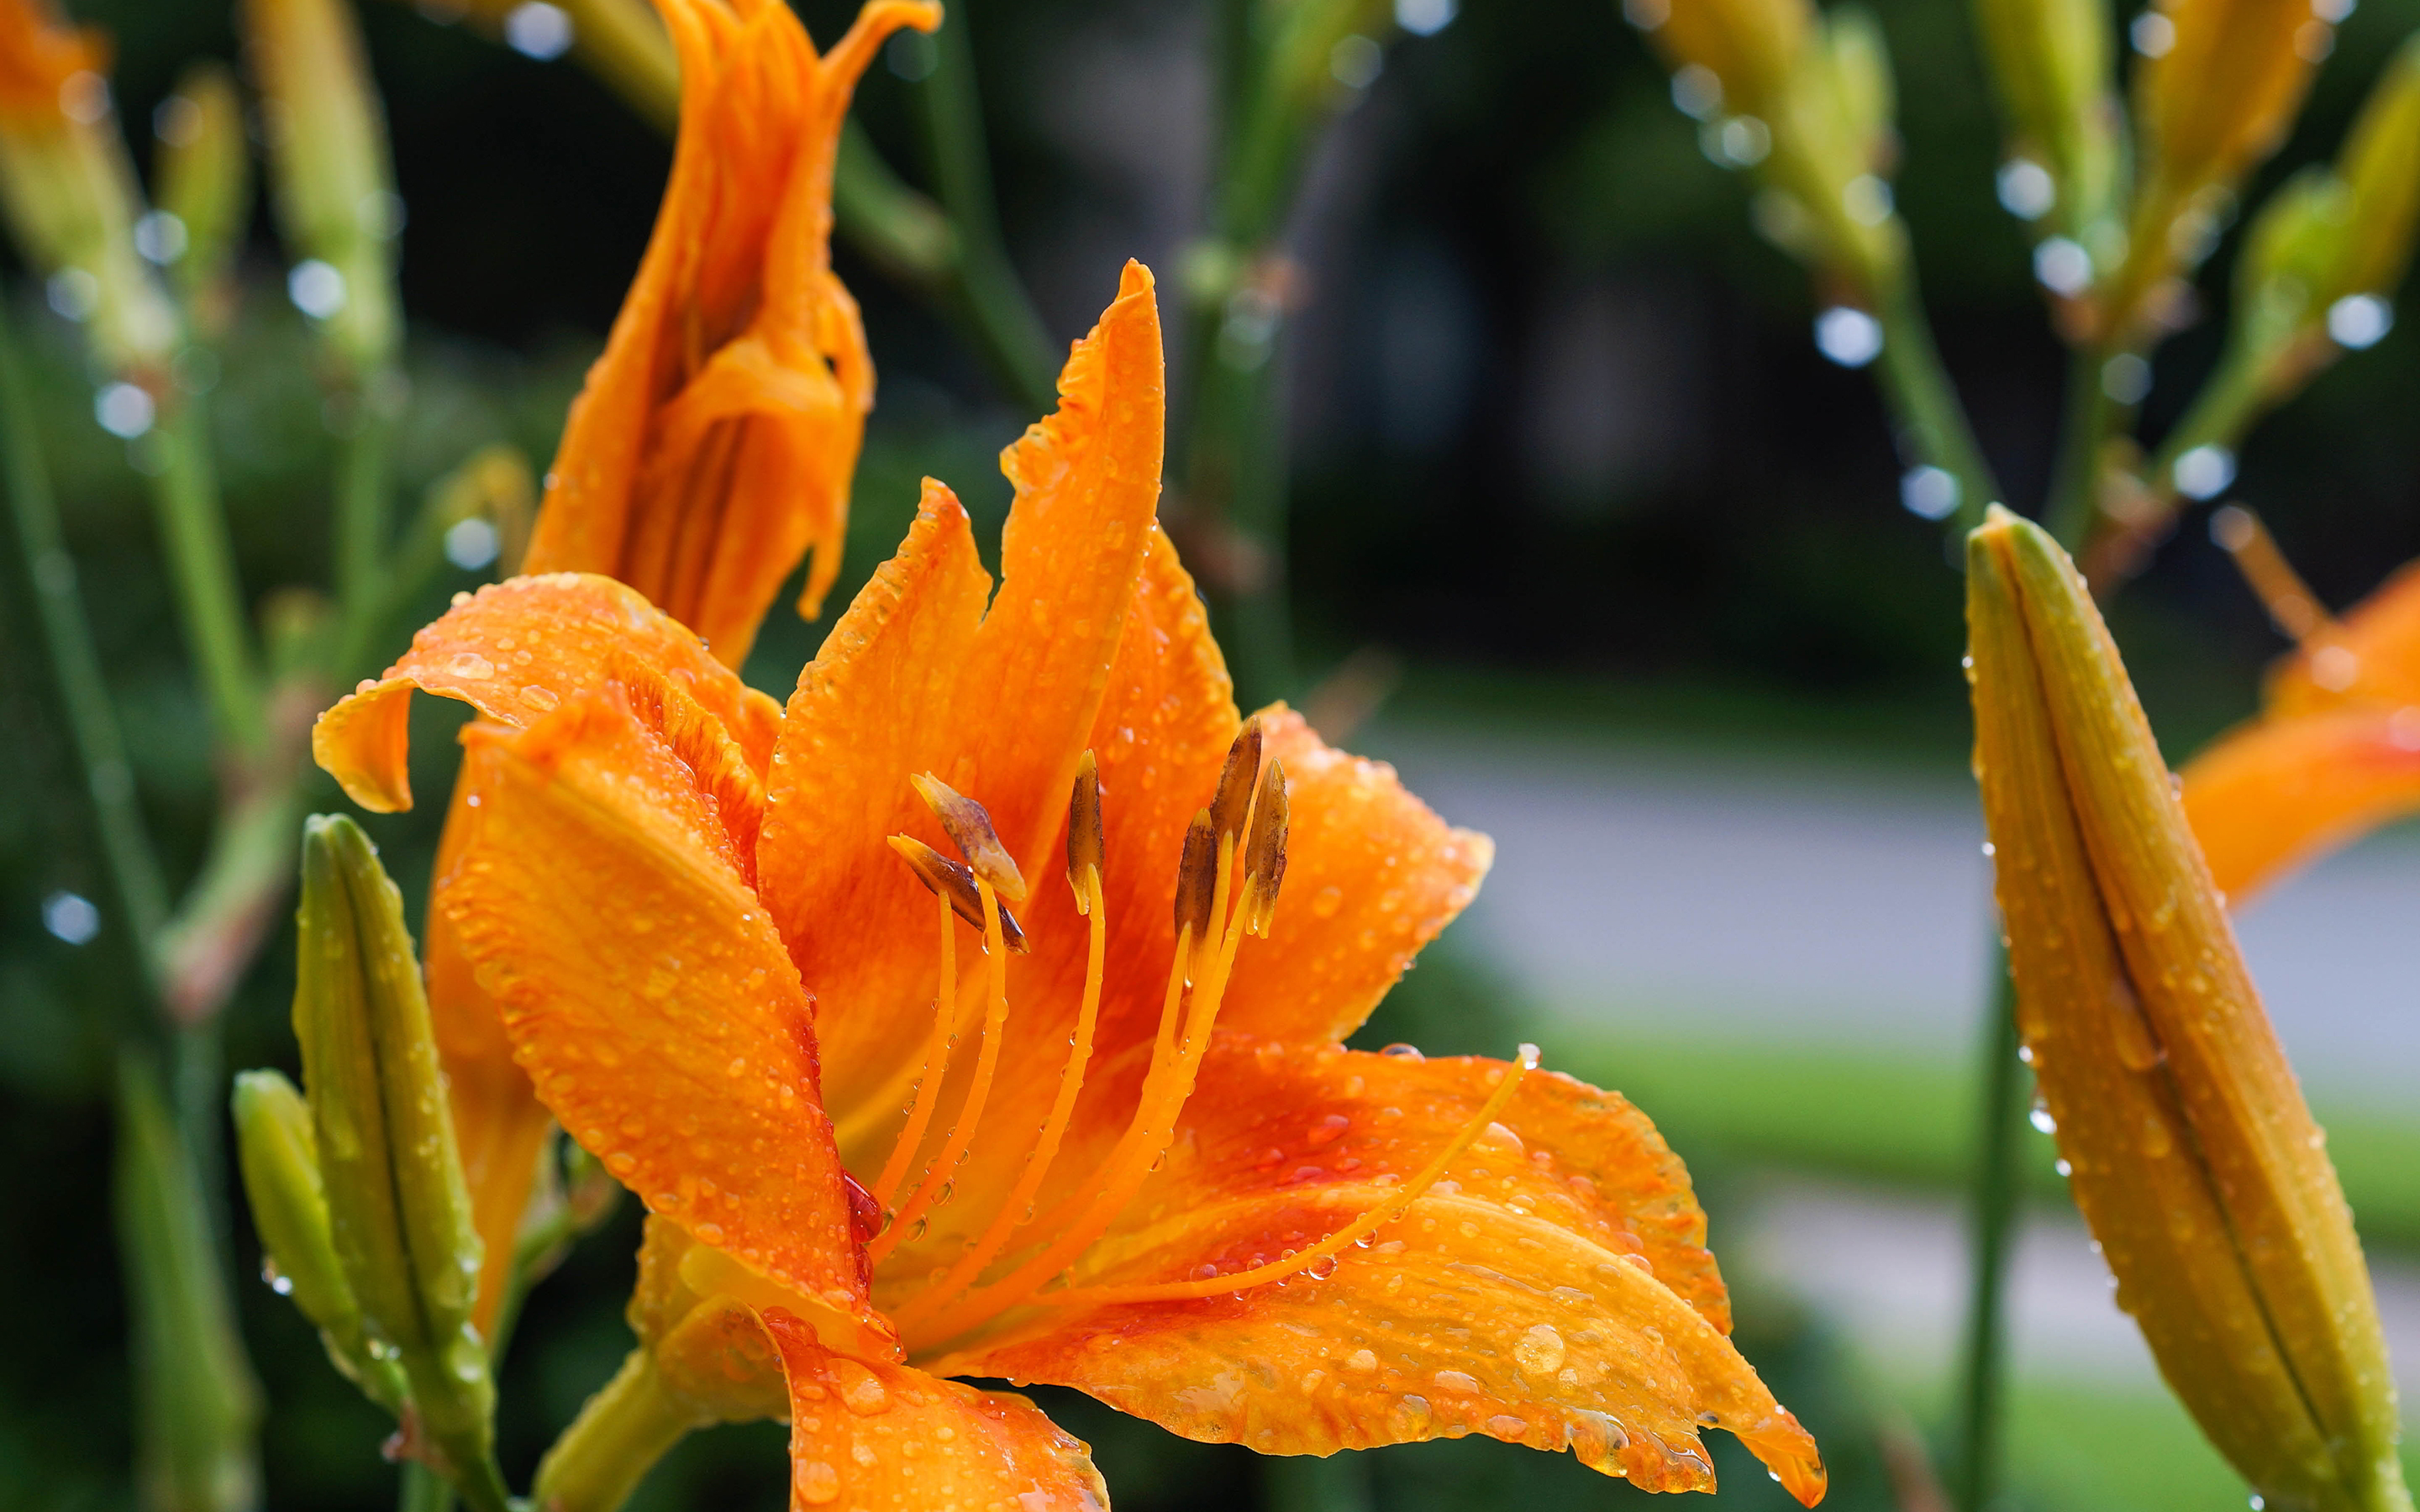 daylily dew drops flower